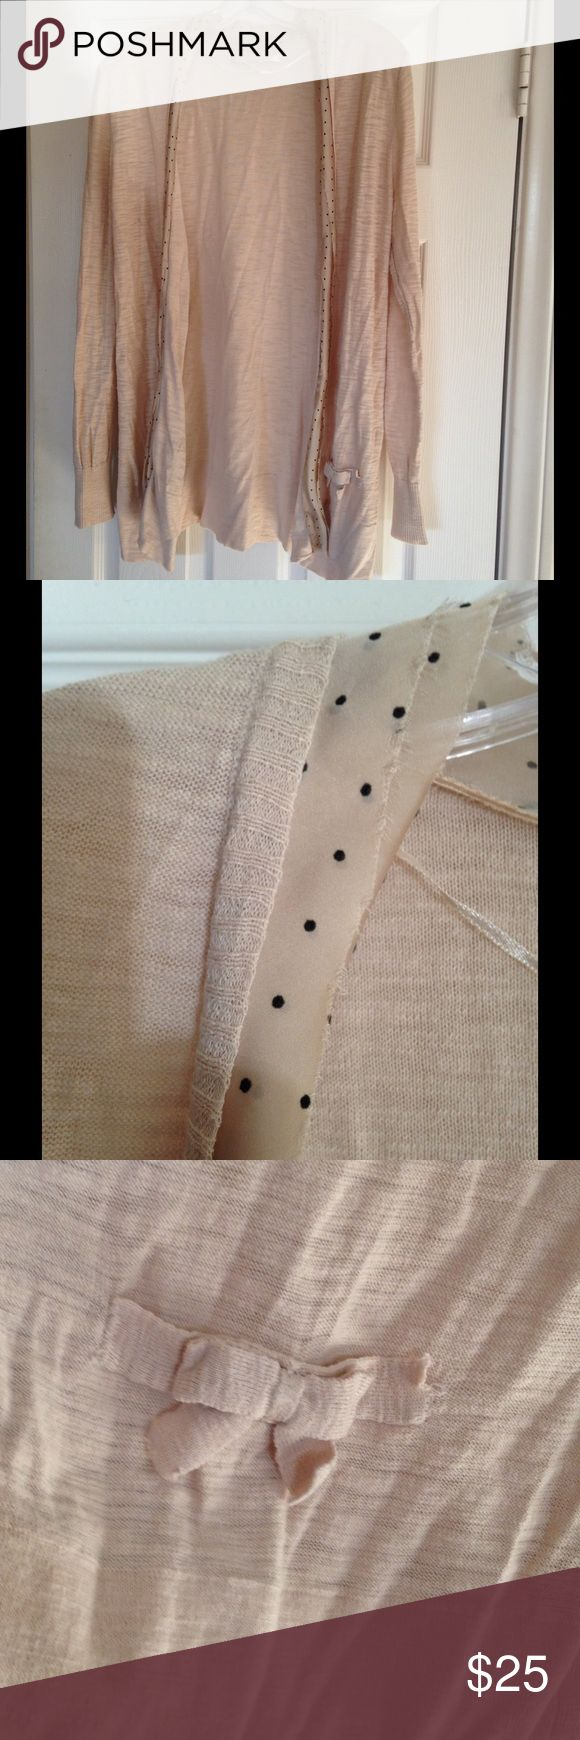 🌹Basic Nude Cardigan Chic lightweight cardigan, with polka dot trim. A bit longer than most, it looks dynamite with leggings and a blouse. Adorable bow tie detail on front pockets (photo 3). 100% cotton. Hand wash cold, flat dry. LC Lauren Conrad Sweaters Cardigans